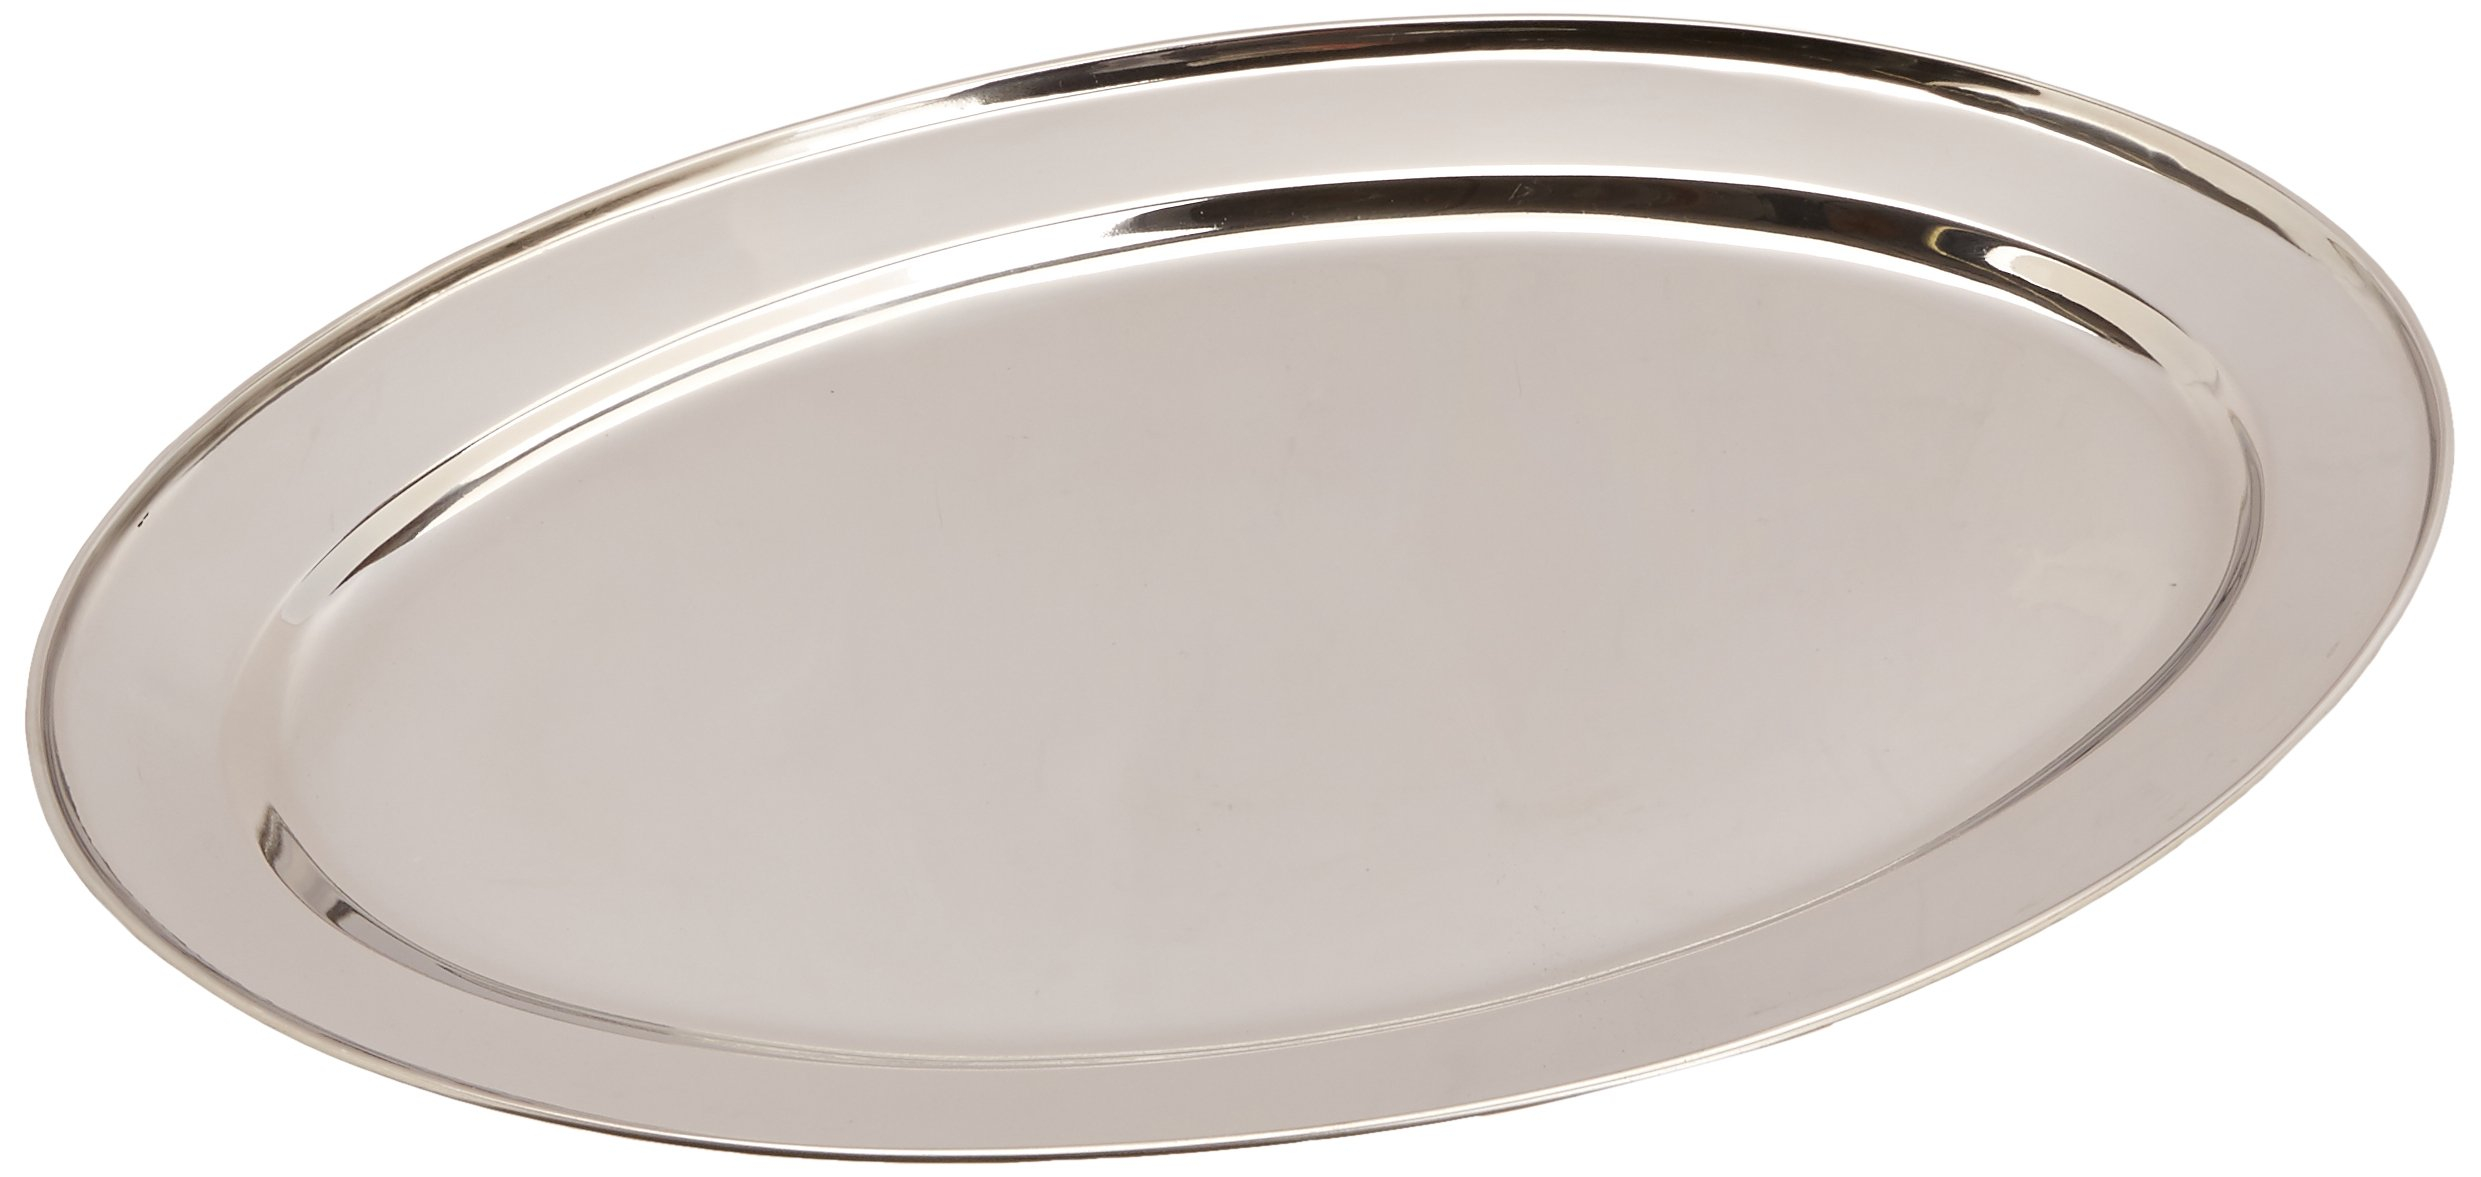 Winco OPL-18 Stainless Steel Oval Platter, 18-Inch by 11.5-Inch